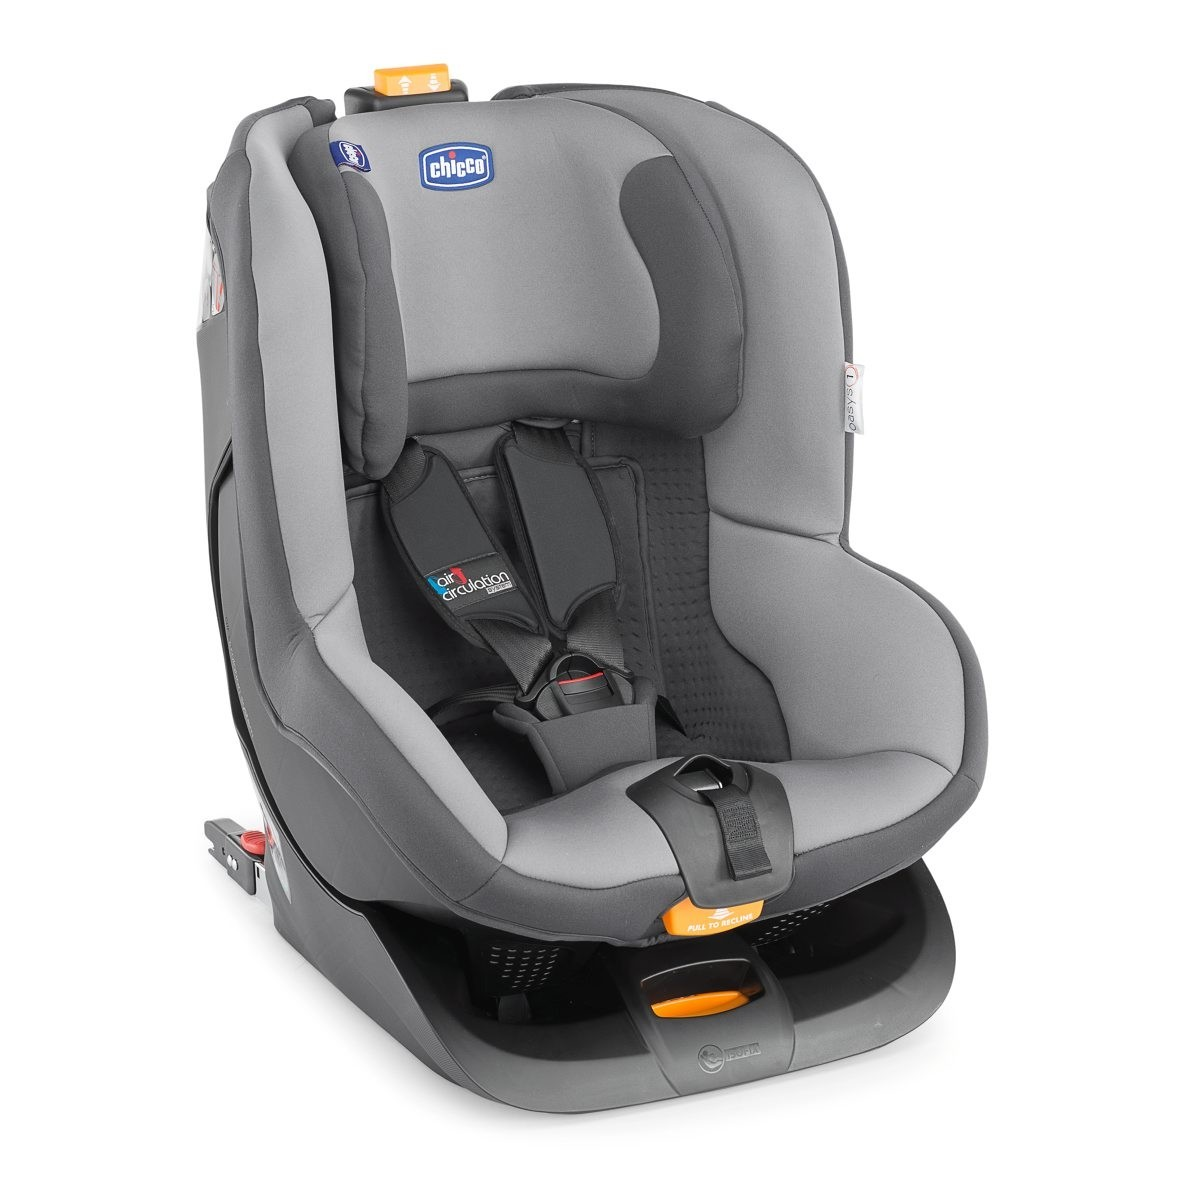 Автокресло NEW OASYS 1 EVO ISOFIX Moon от Ravta